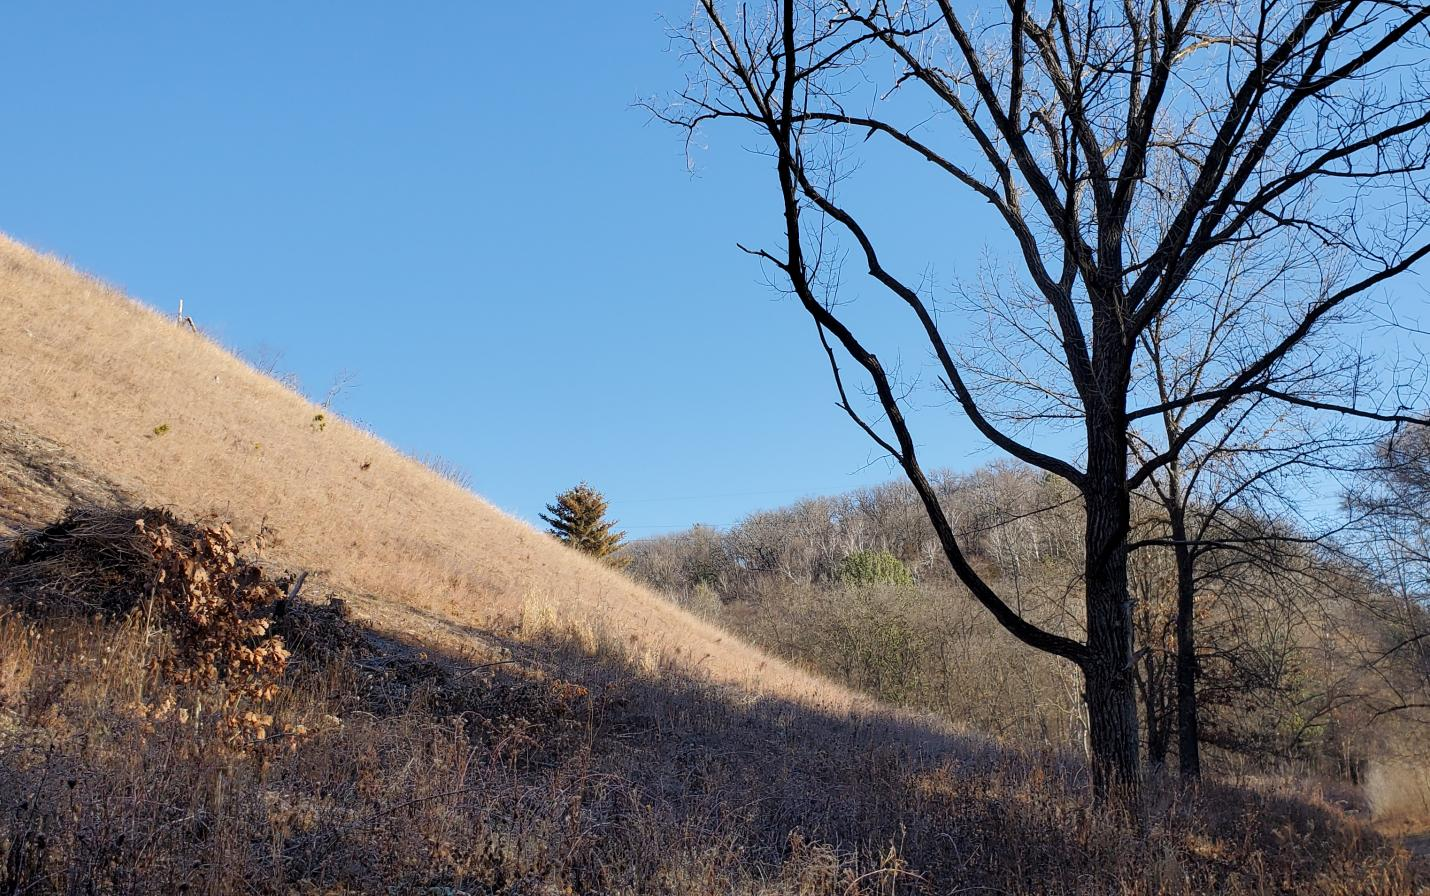 View of Boscobel Bluffs nature preserve